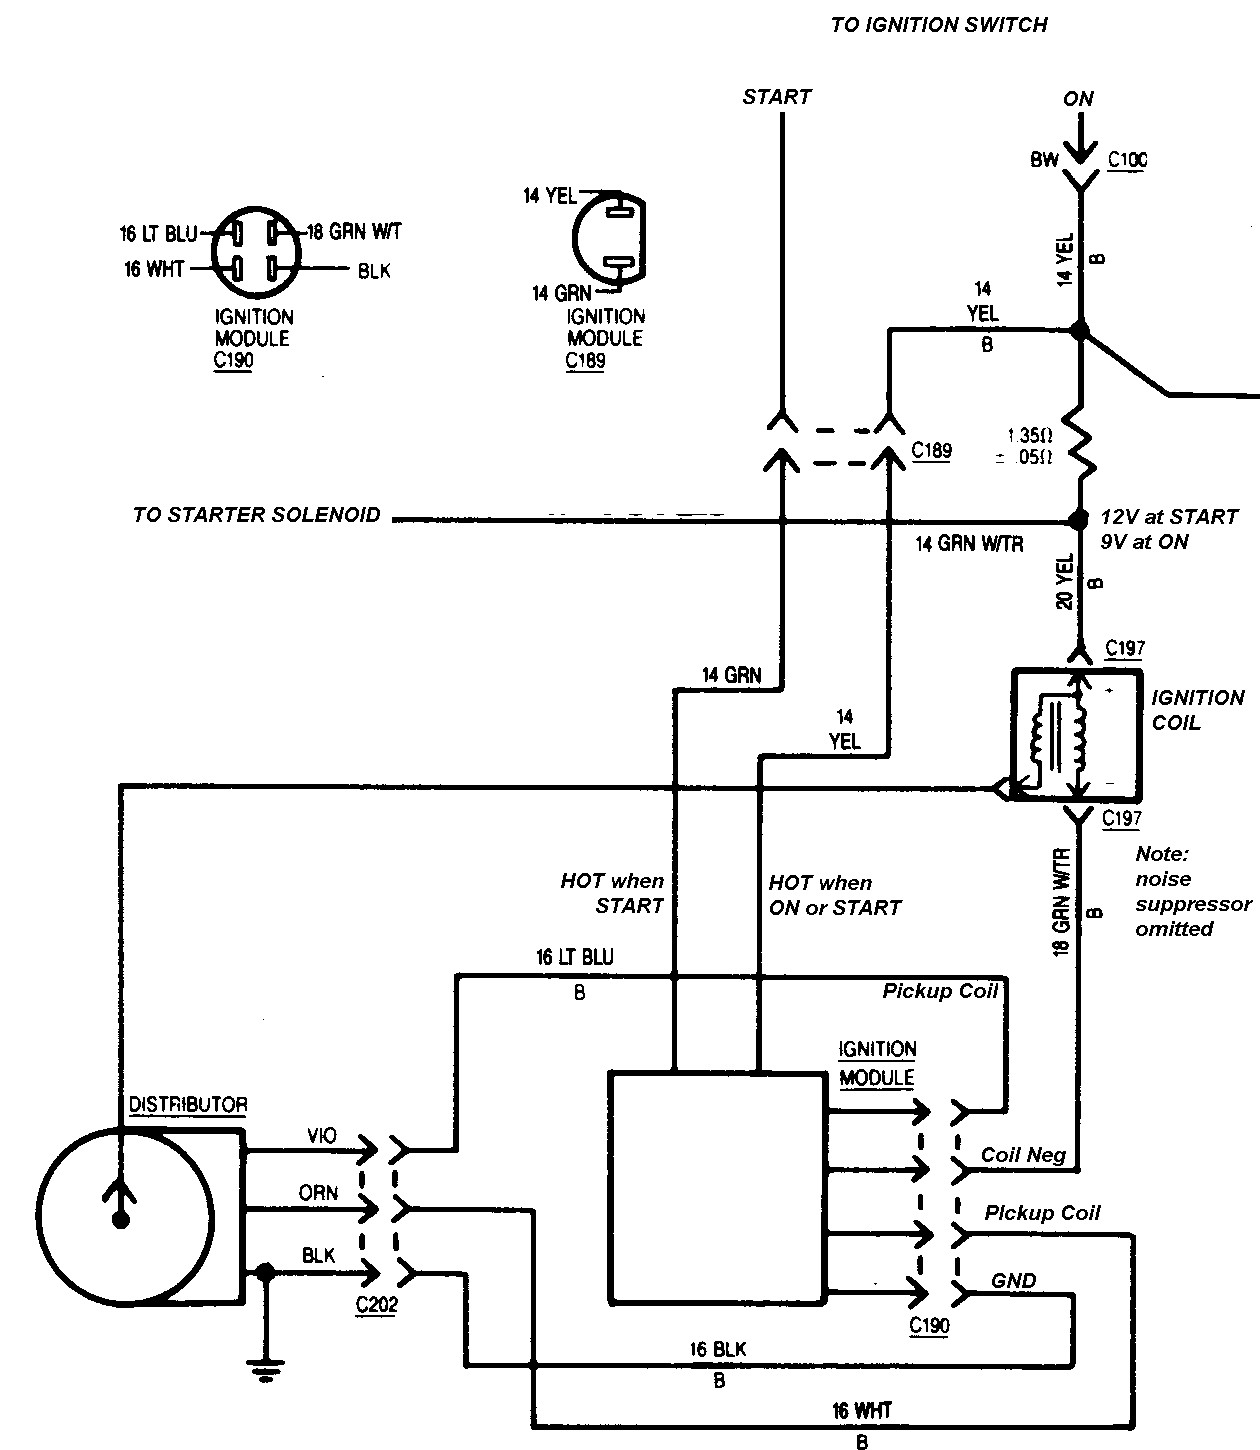 Surprising Starter Solenoid Wiring Diagram As Well Gm Starter Solenoid Wiring Wiring Cloud Pimpapsuggs Outletorg